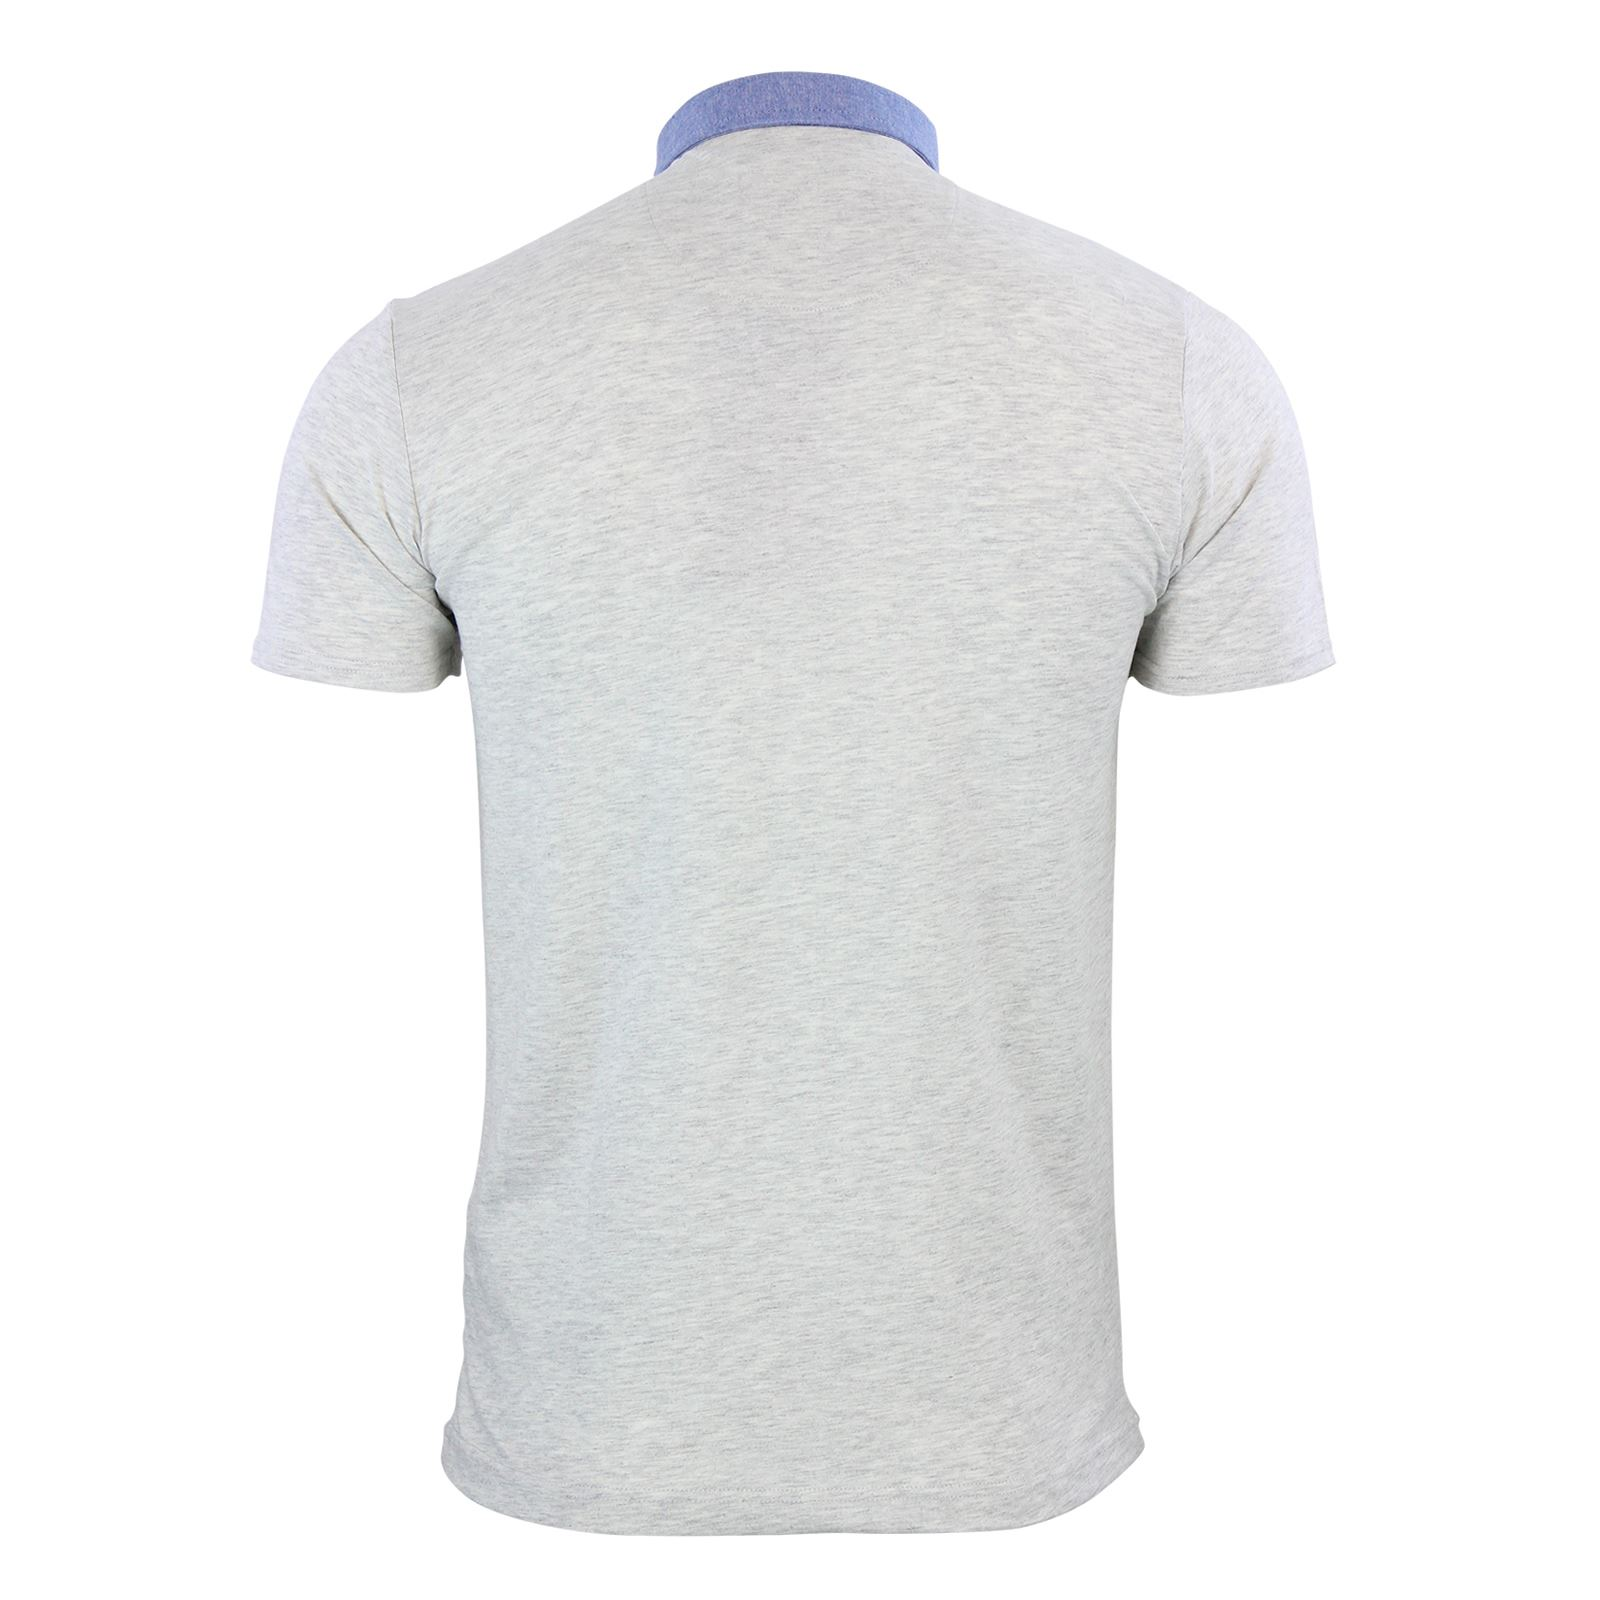 Mens-Polo-T-Shirt-Brave-Soul-Glover-Cotton-Collared-Short-Sleeve-Casual-Top thumbnail 37